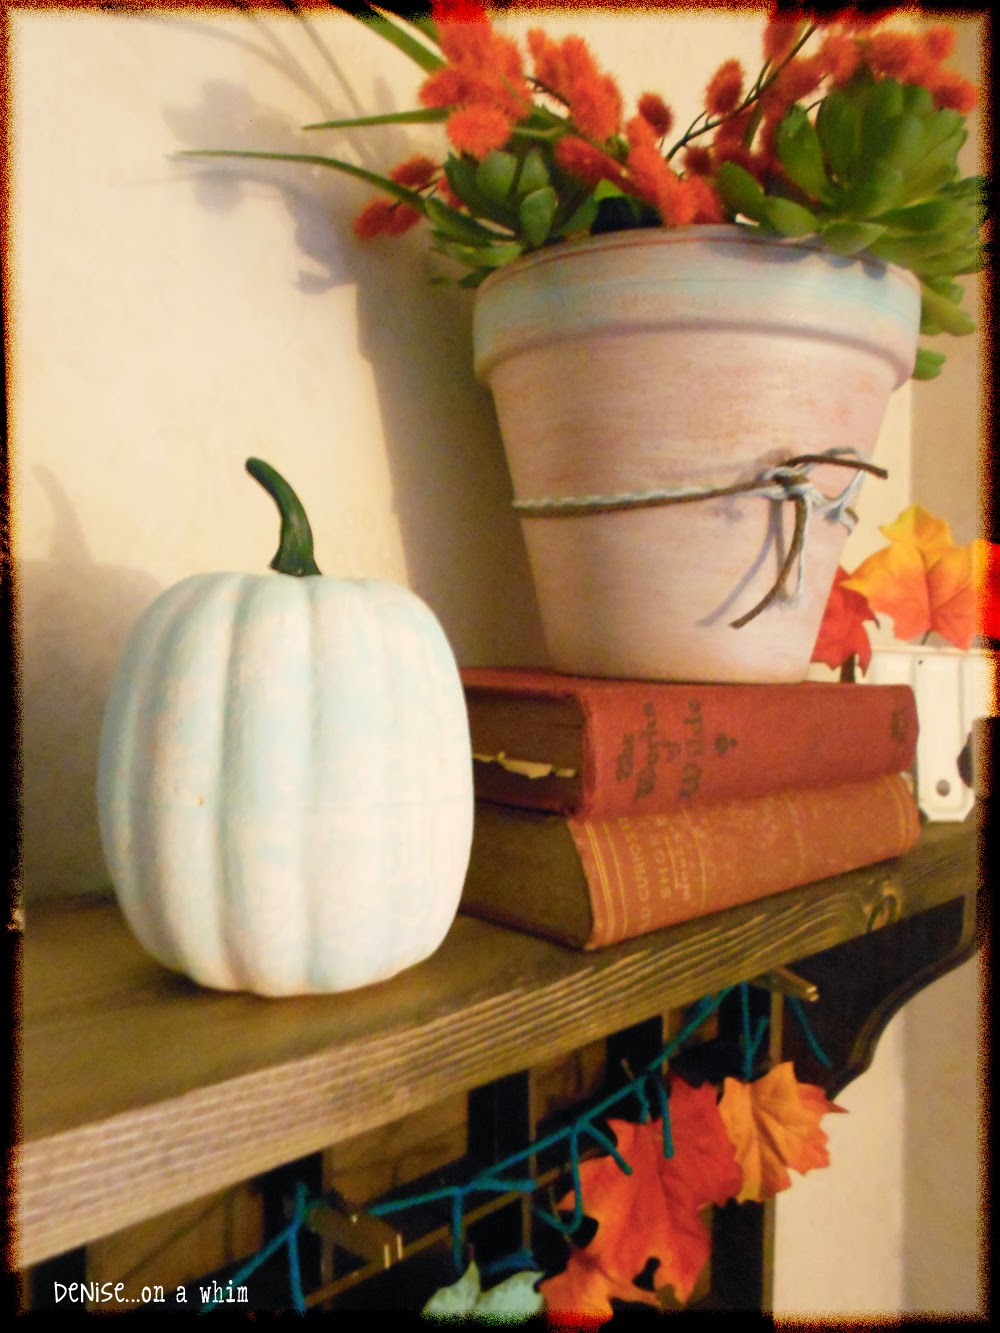 Painted Dollar Store Pumpkina and Vintage Books in a Fall Vignette from Denise on a Whim